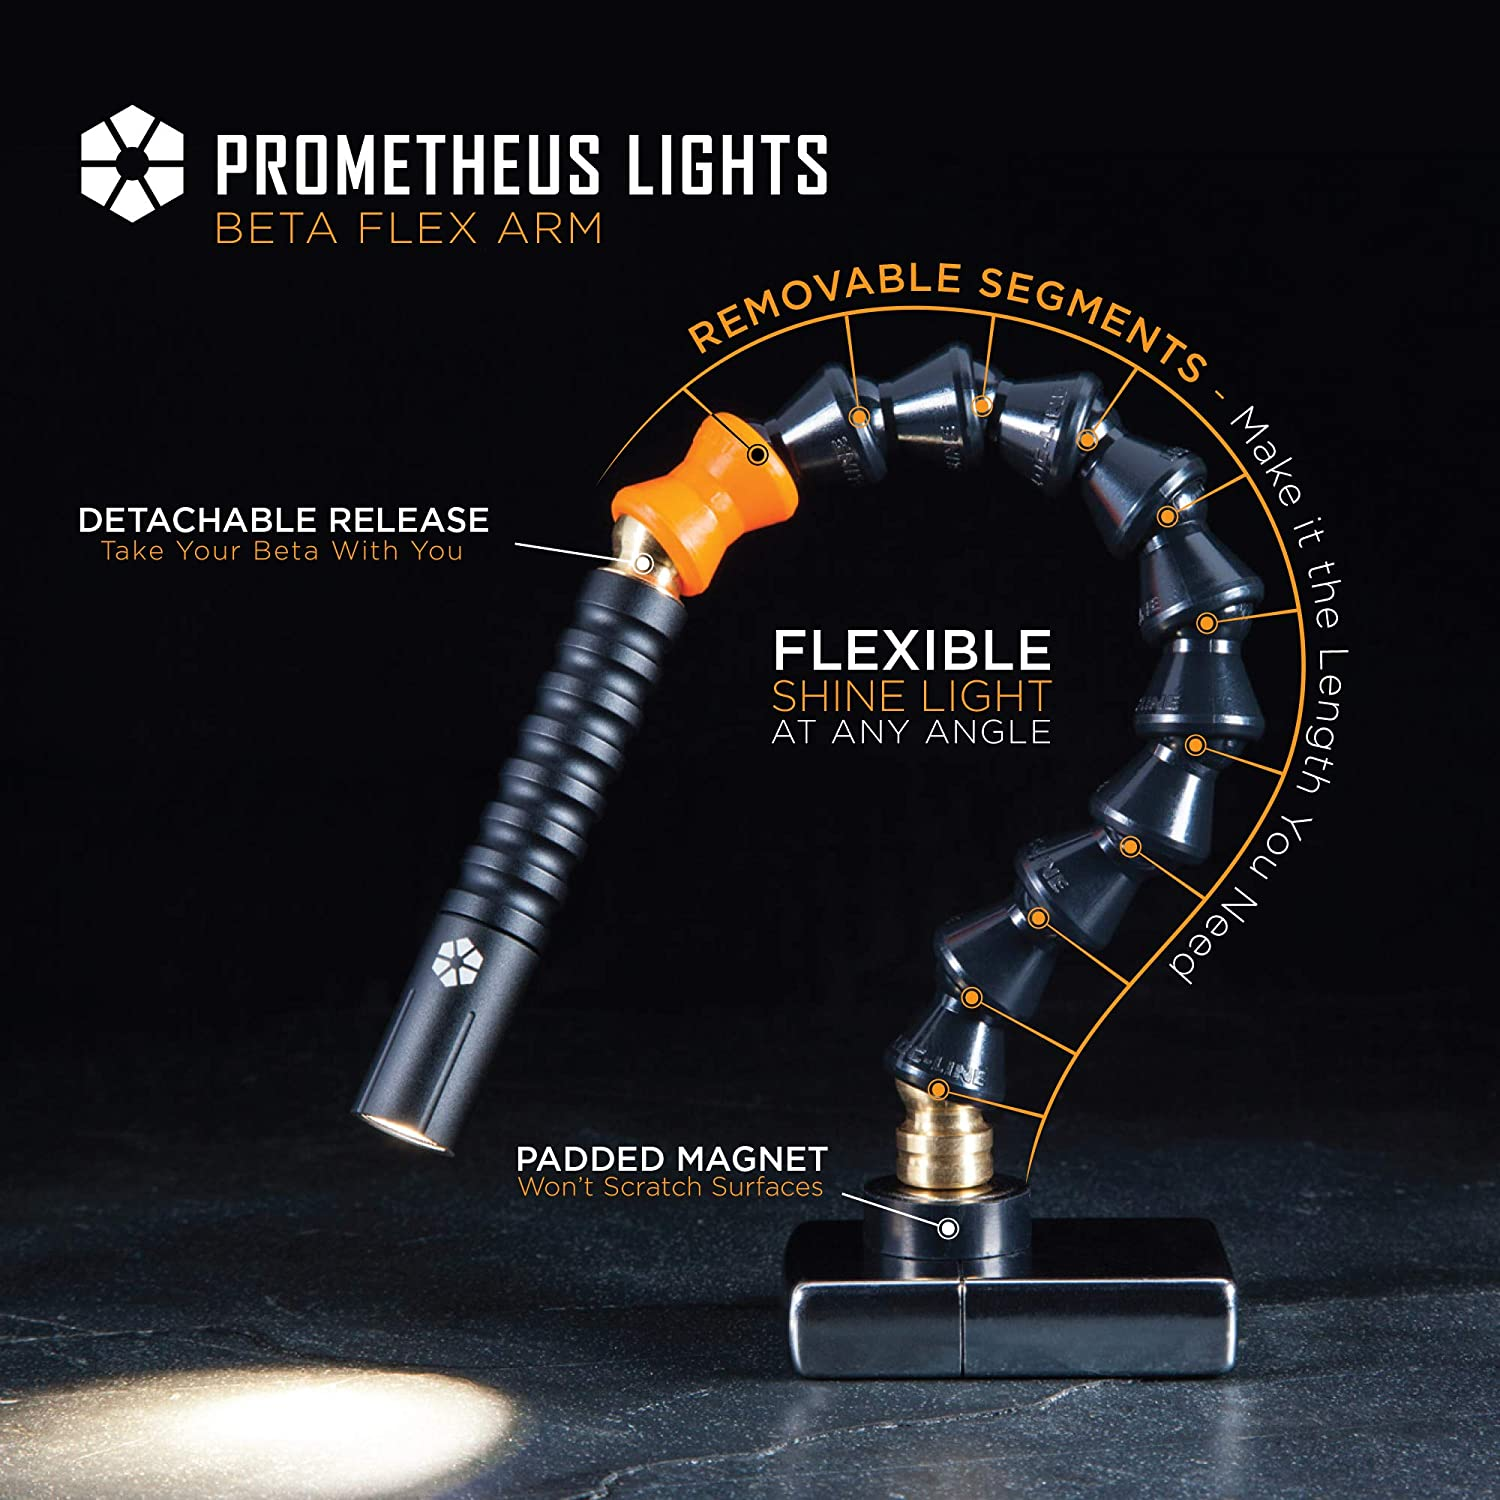 Prometheus Lights Beta Flex Arm Magnetic Mount Flex Arm with Beta Brass Flashlight